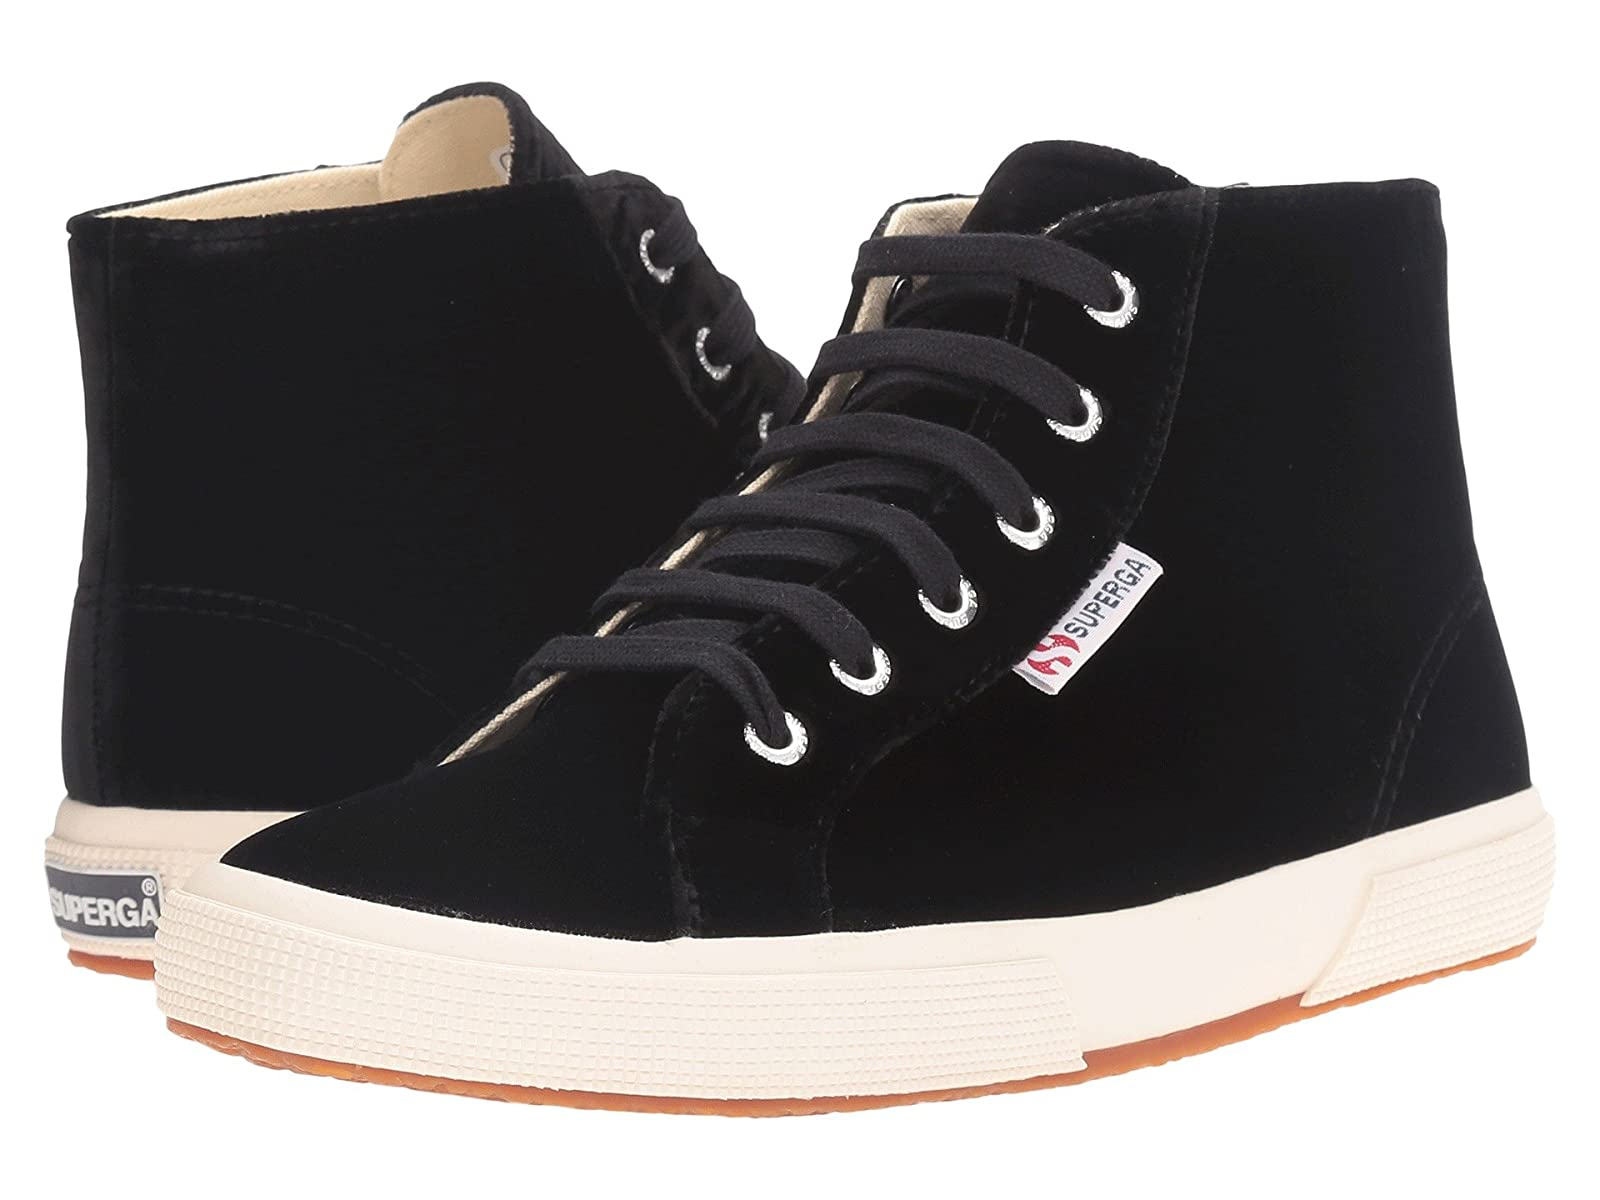 Superga 2095 VelvetwCheap and distinctive eye-catching shoes